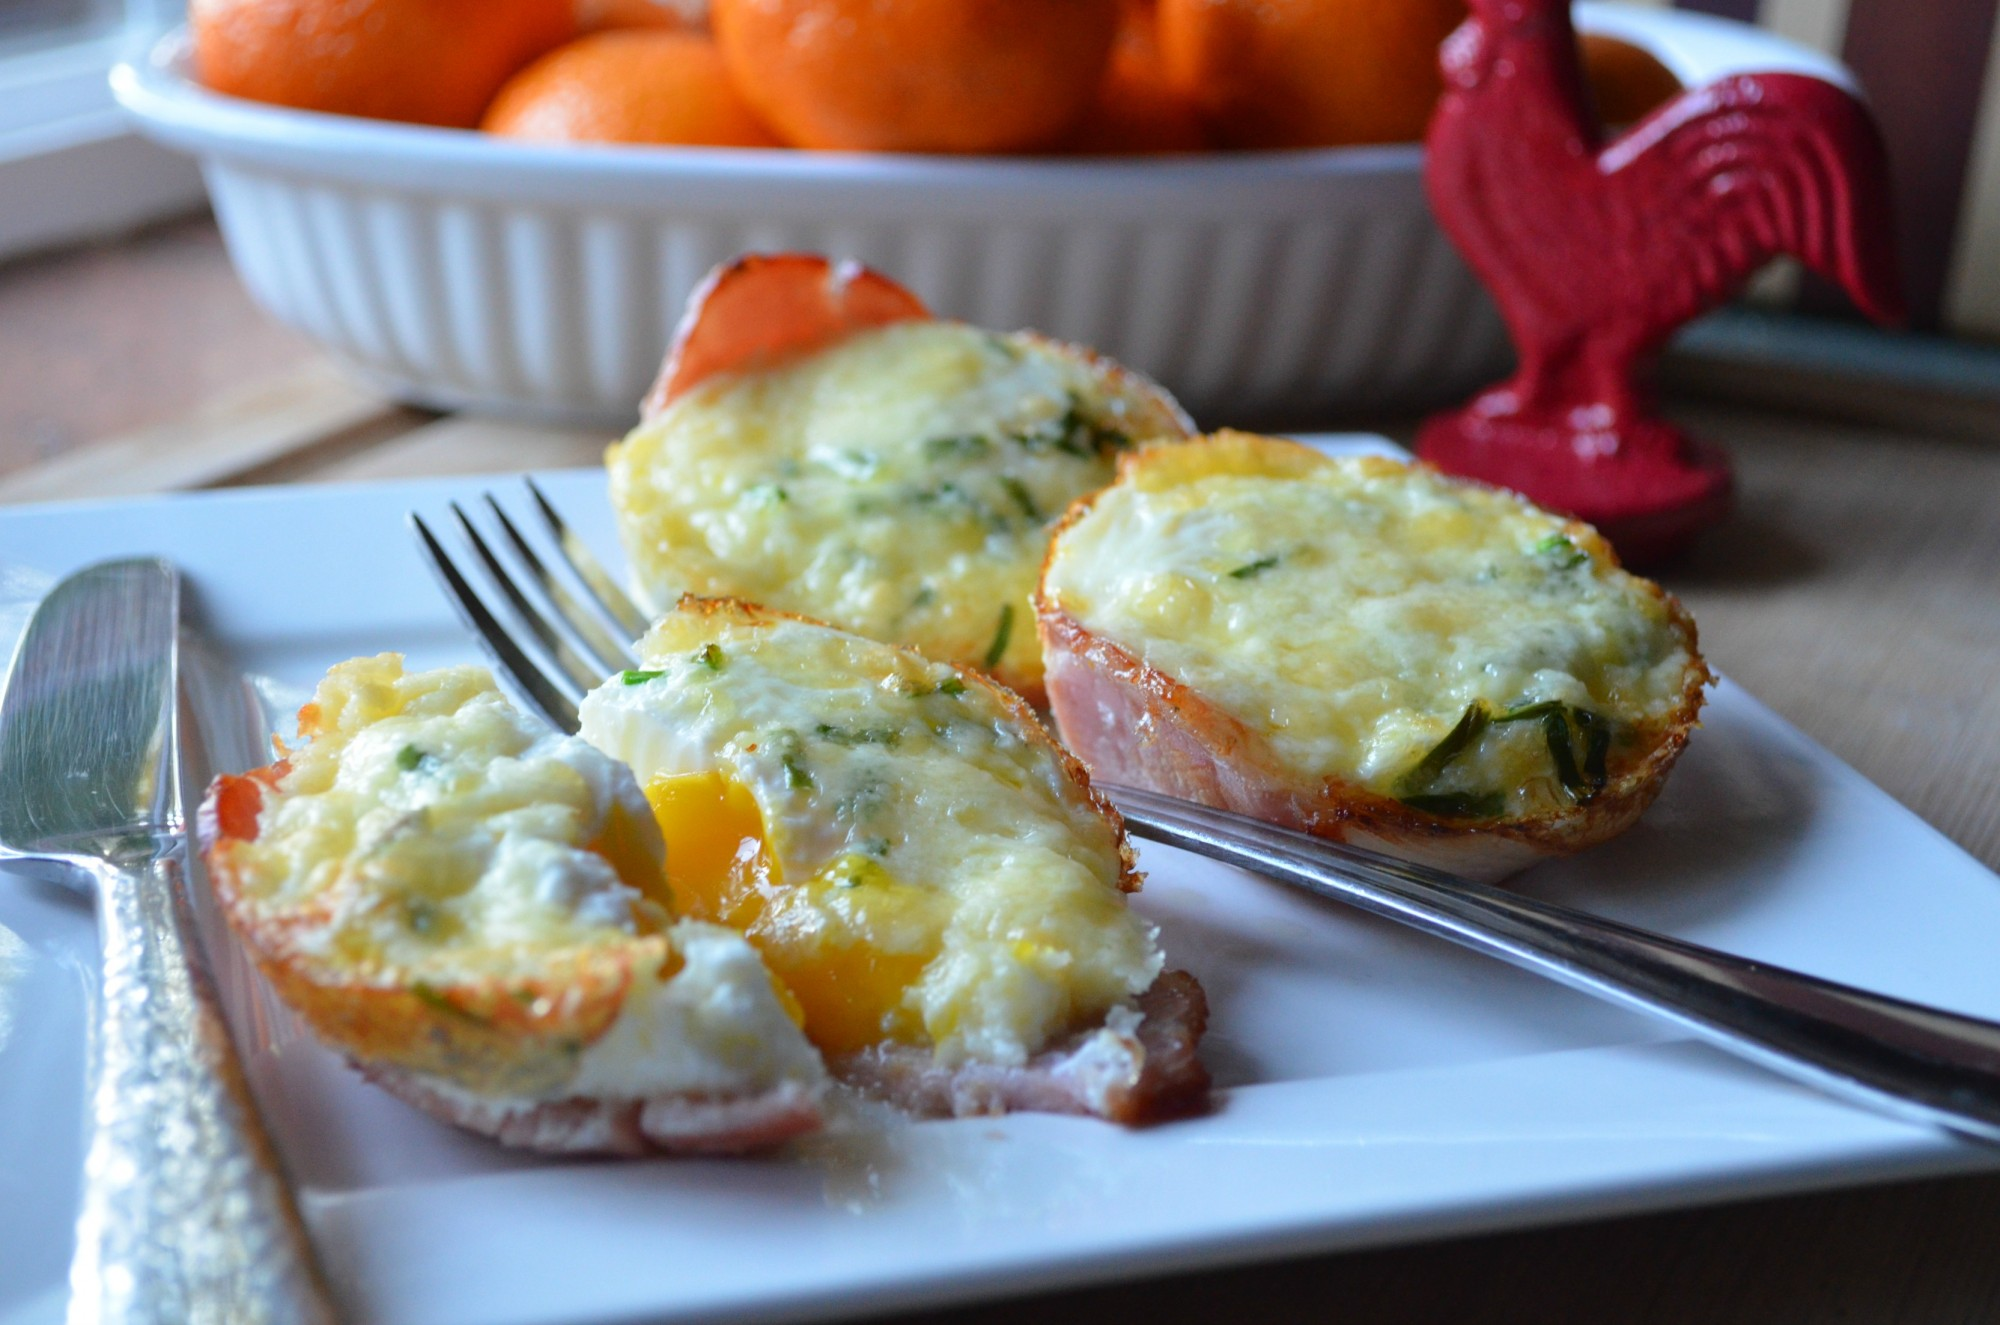 Baked Eggs and Havarti